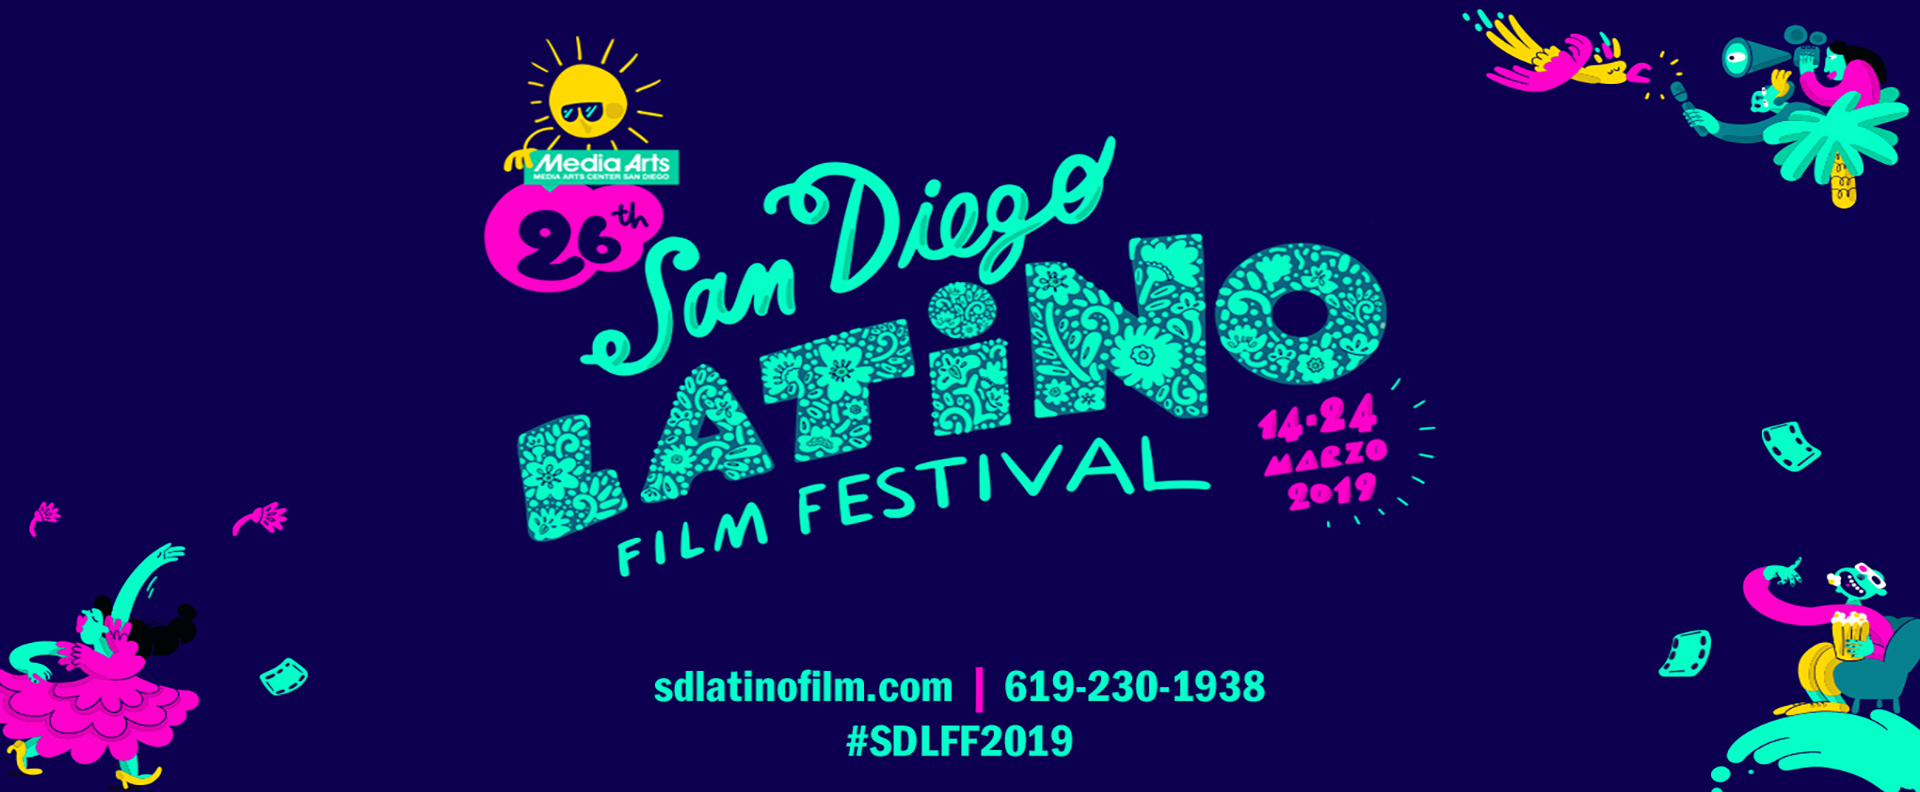 San Diego Latino Film Festival 2019 Digital Gym Cinema